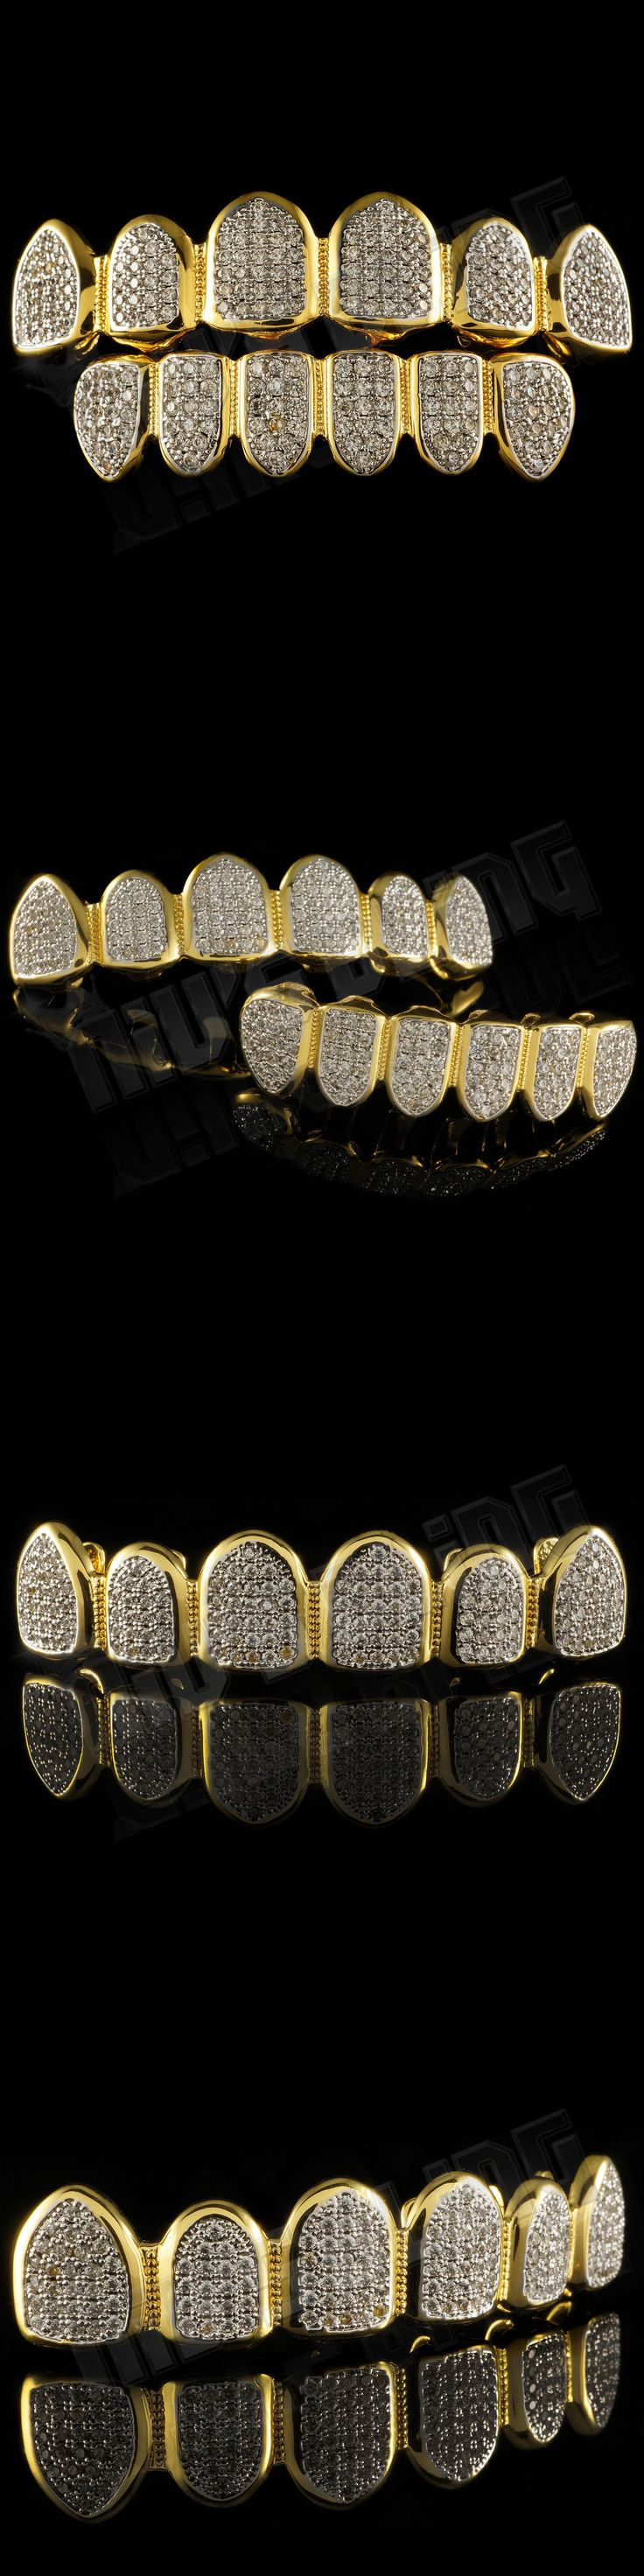 Grillz Dental Grills 152808: 18K Gold Plated Cz Micro Pave Top Bottom Custom Grillz Set Rhodium Teeth Grills BUY IT NOW ONLY: $59.99